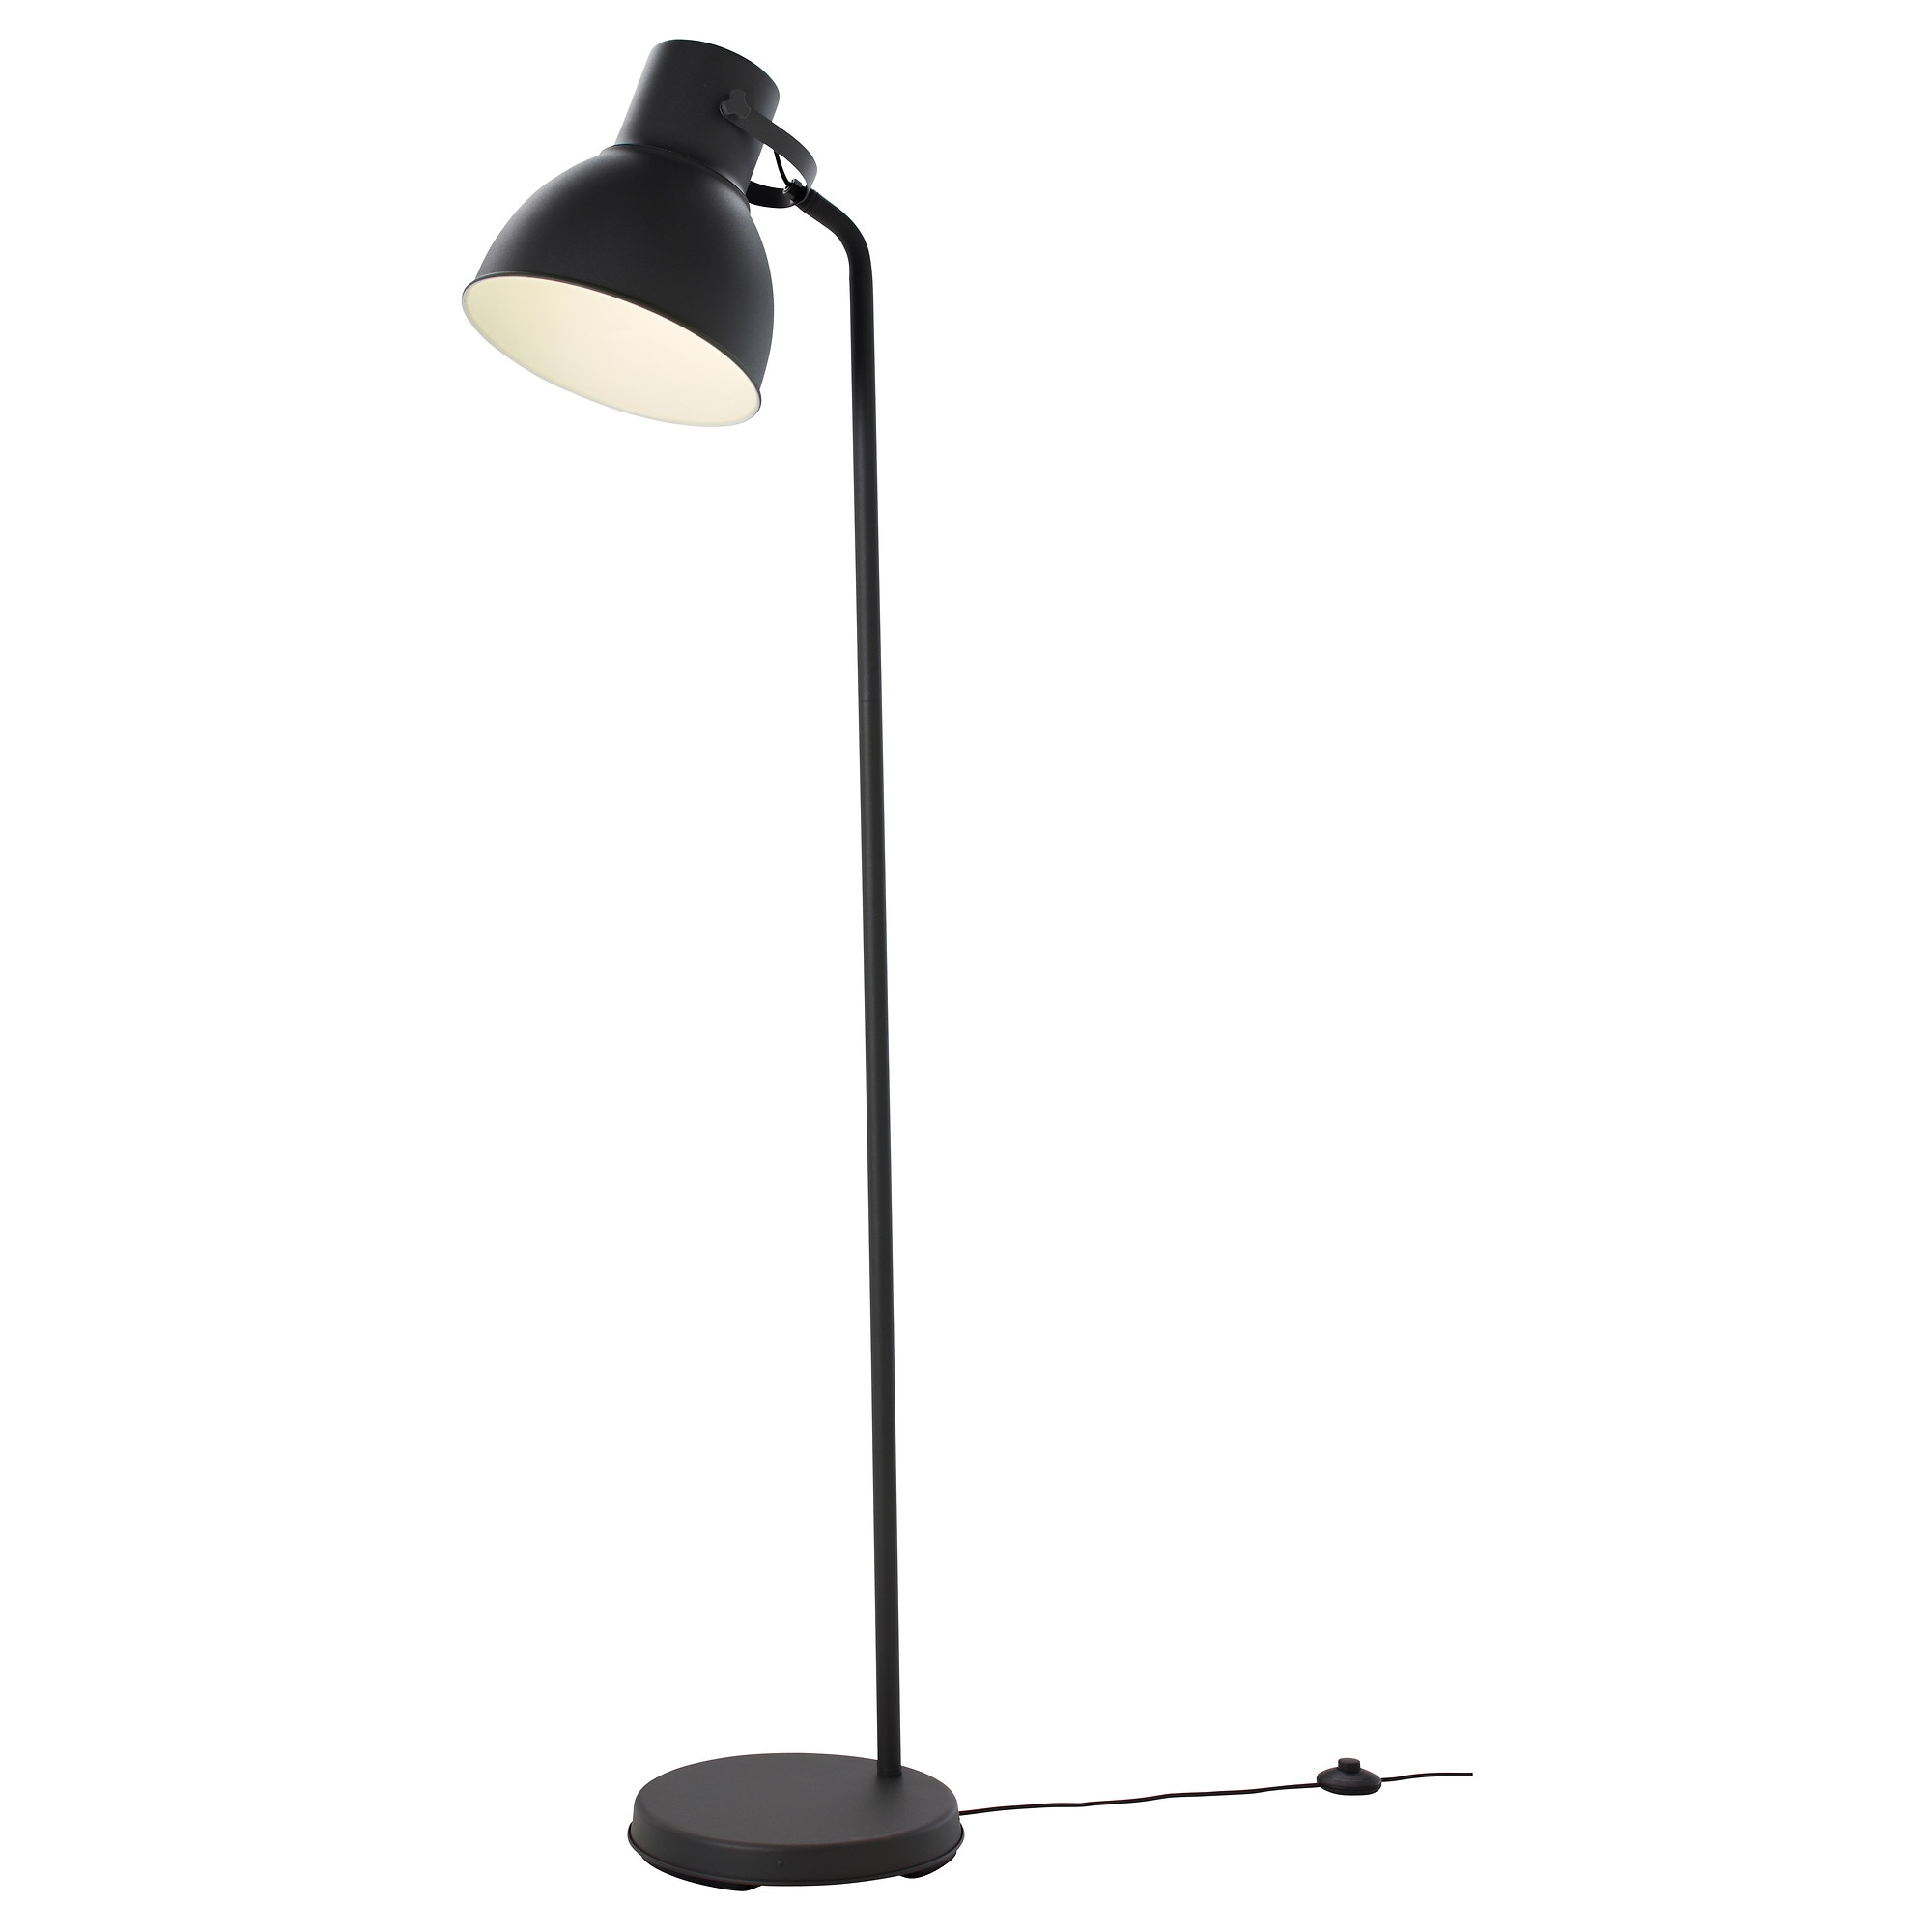 floor lamps  modern  contemporary floor lamps  ikea - hektar floor lamp with led bulb dark gray max  w height